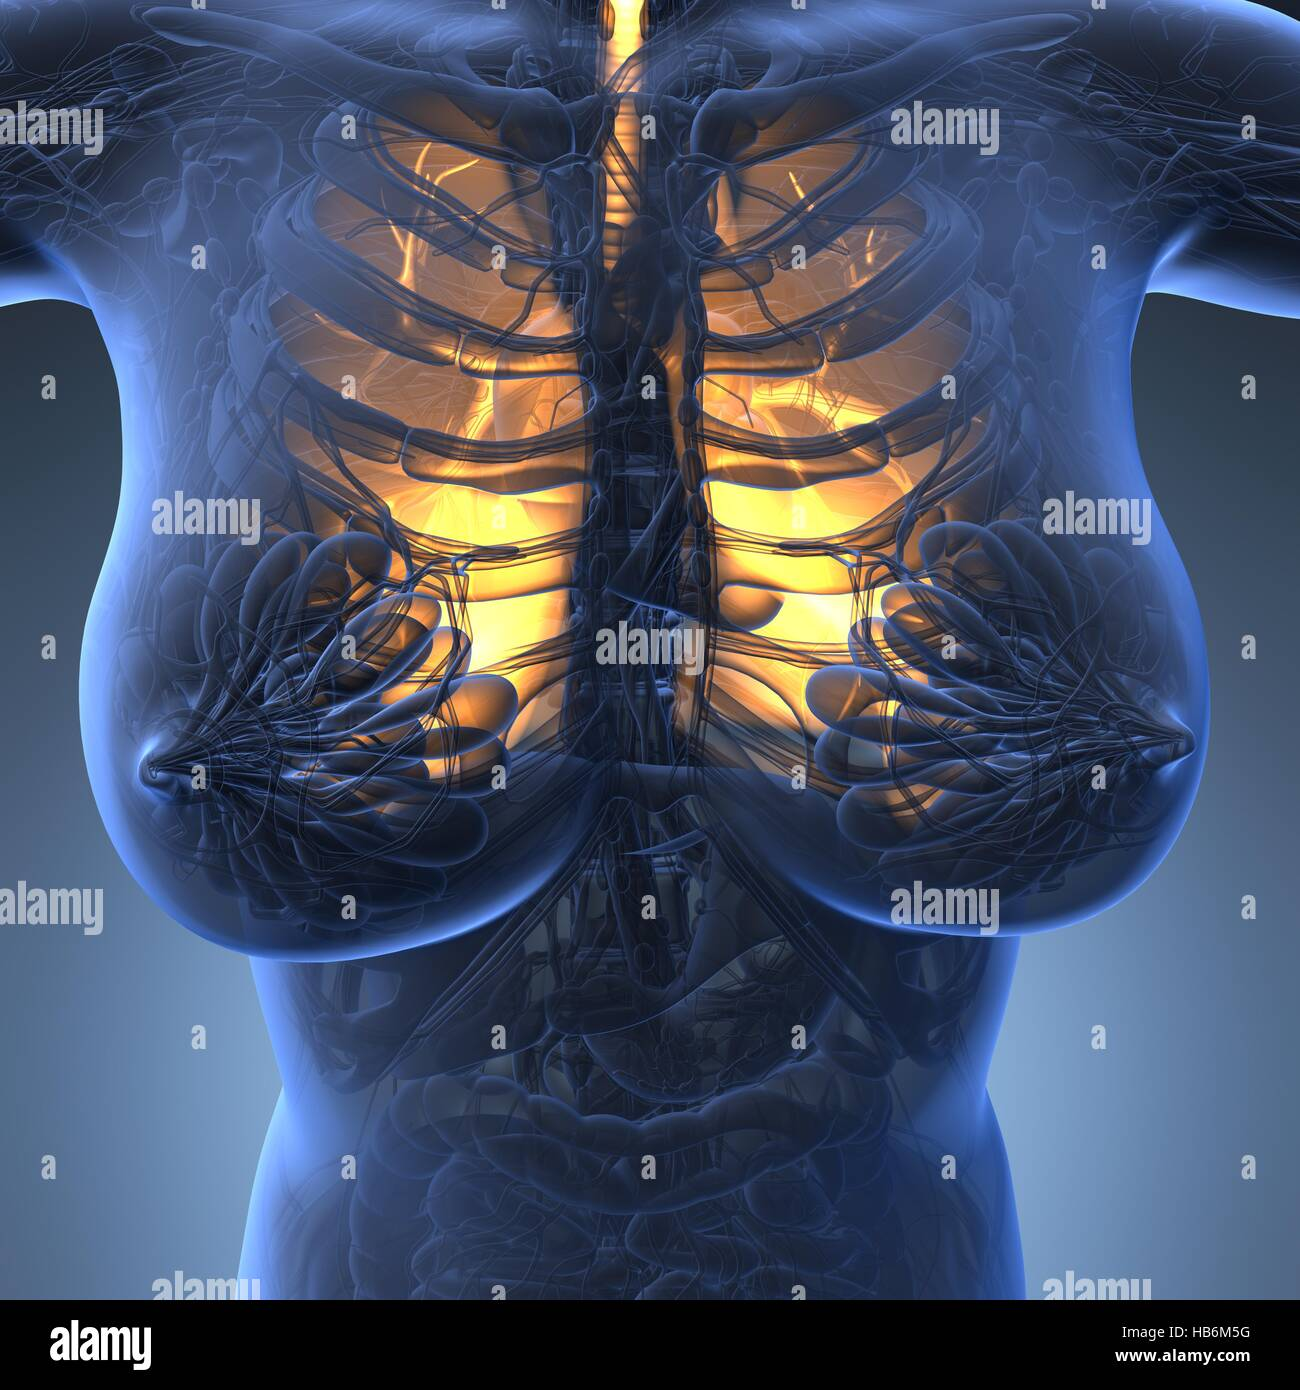 Science Anatomy Of Woman Body With Glow Lungs Stock Photo 127381340